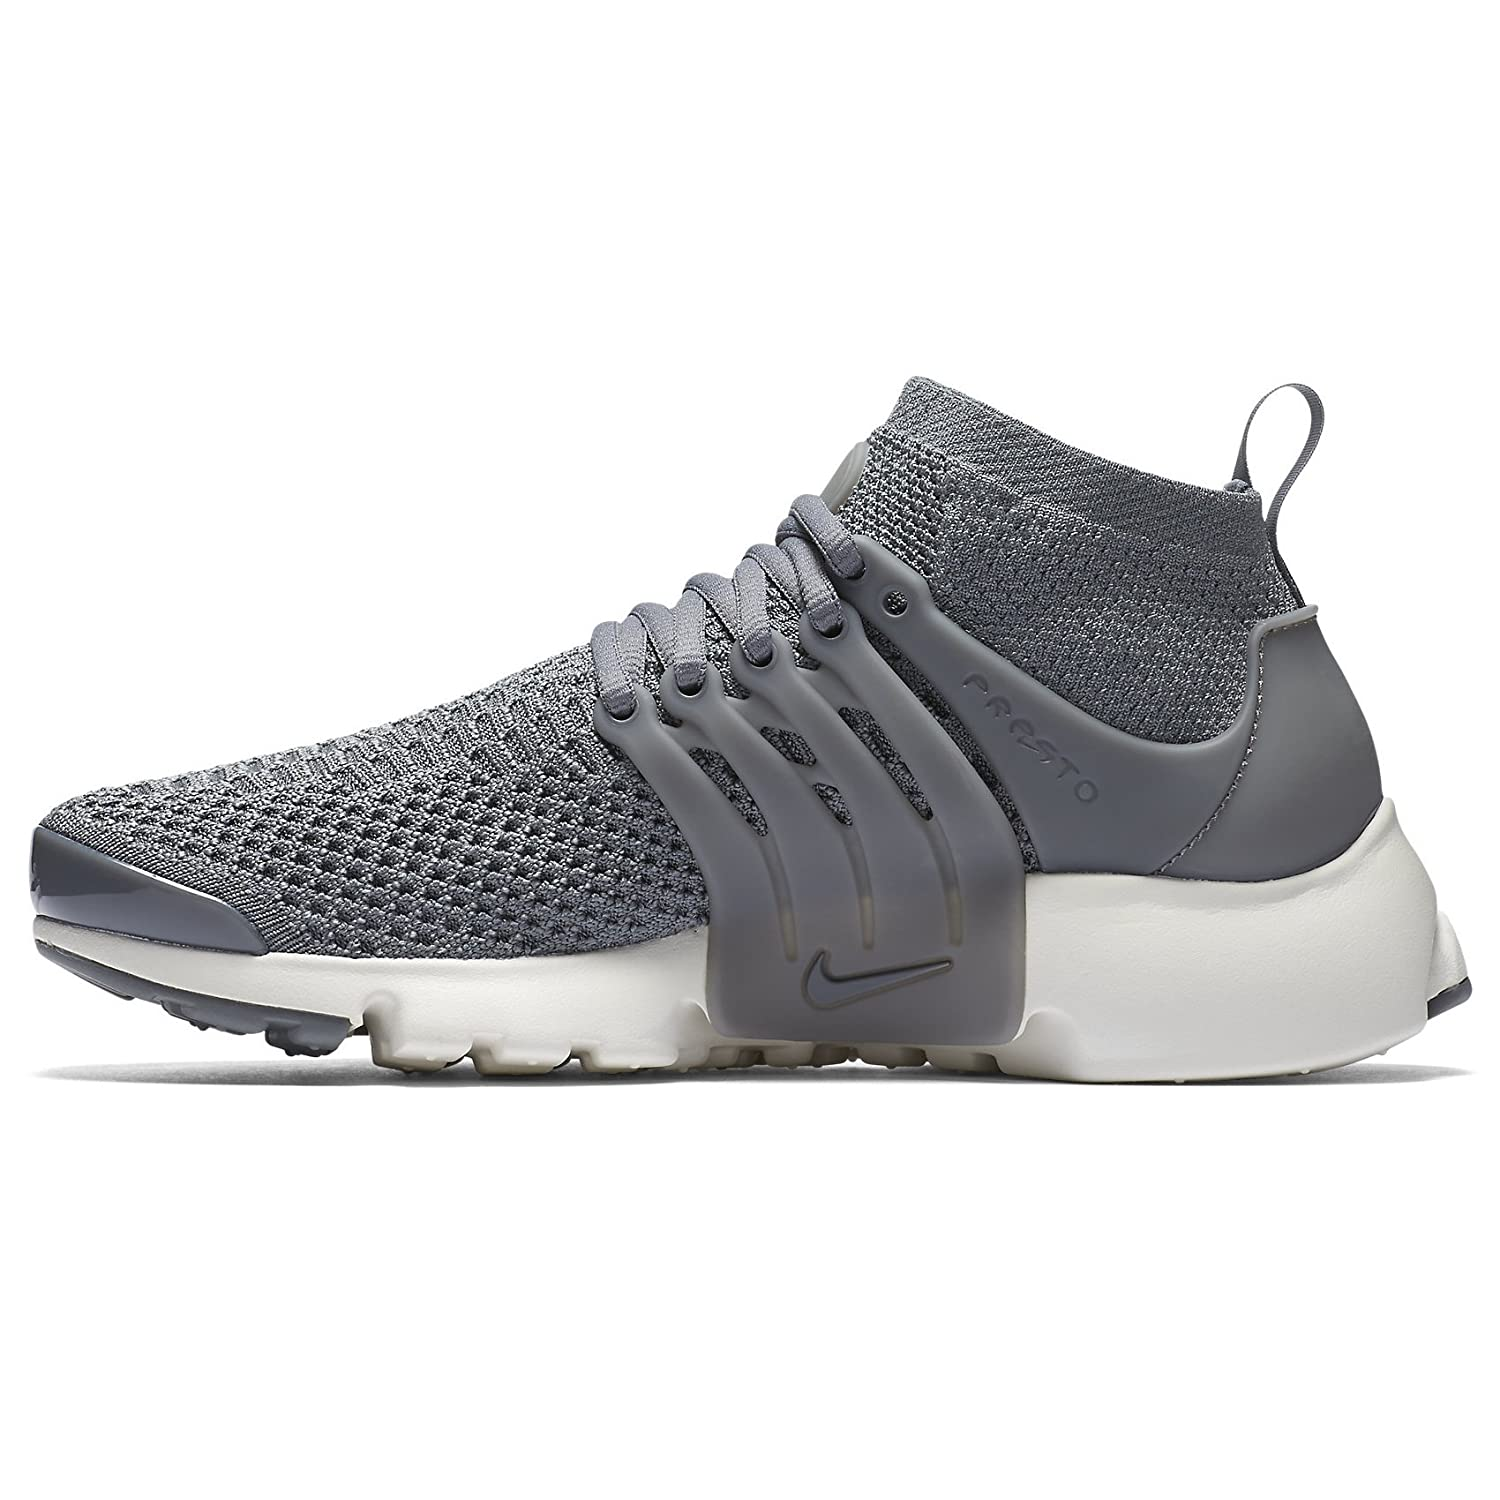 timeless design f73da 1b837 Nike W Air Presto Flyknit Ultra 835738-002 Cool Grey/White ...